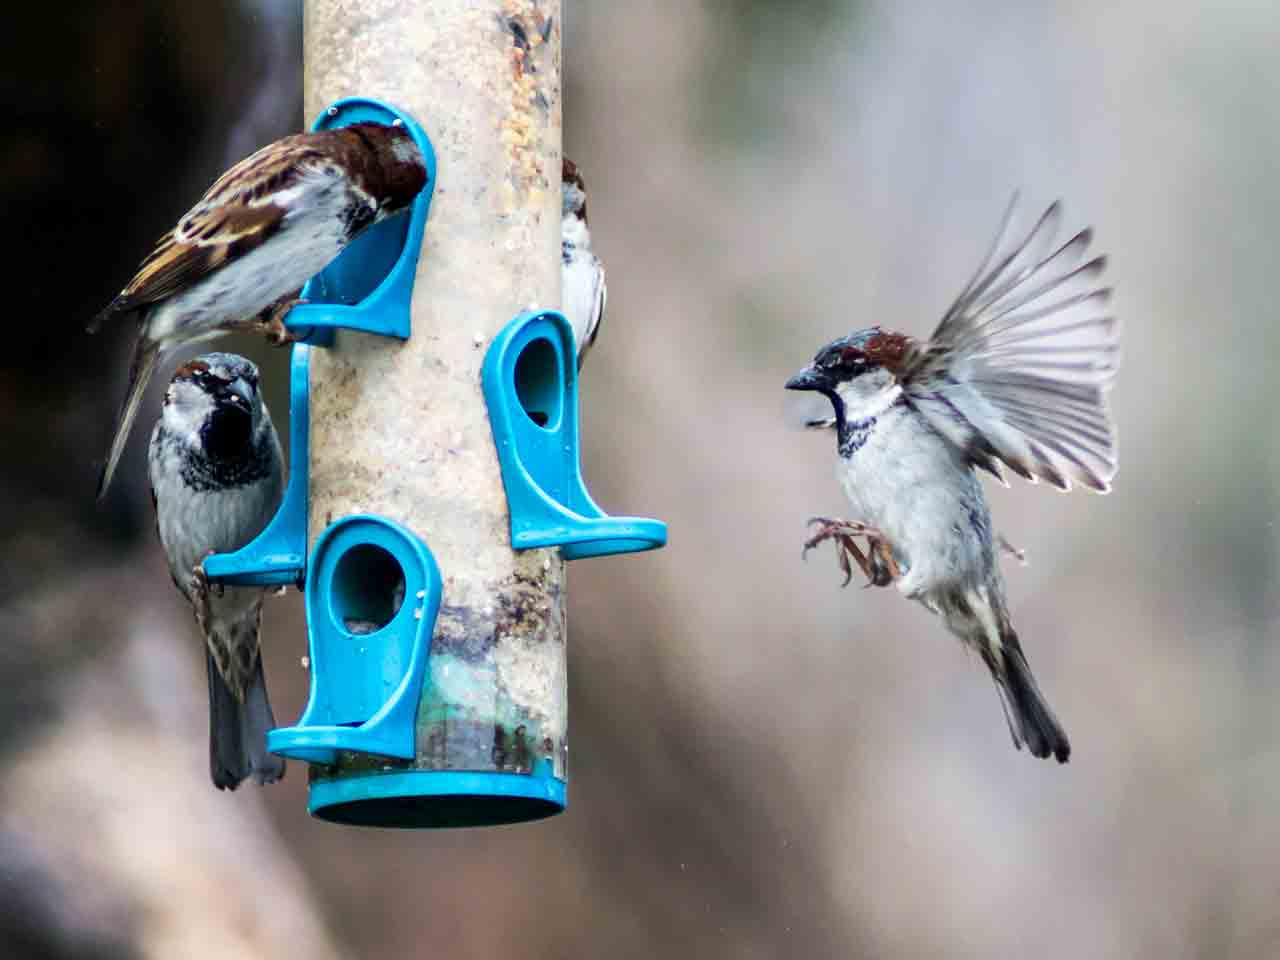 House sparrows feed on a garden feeding station